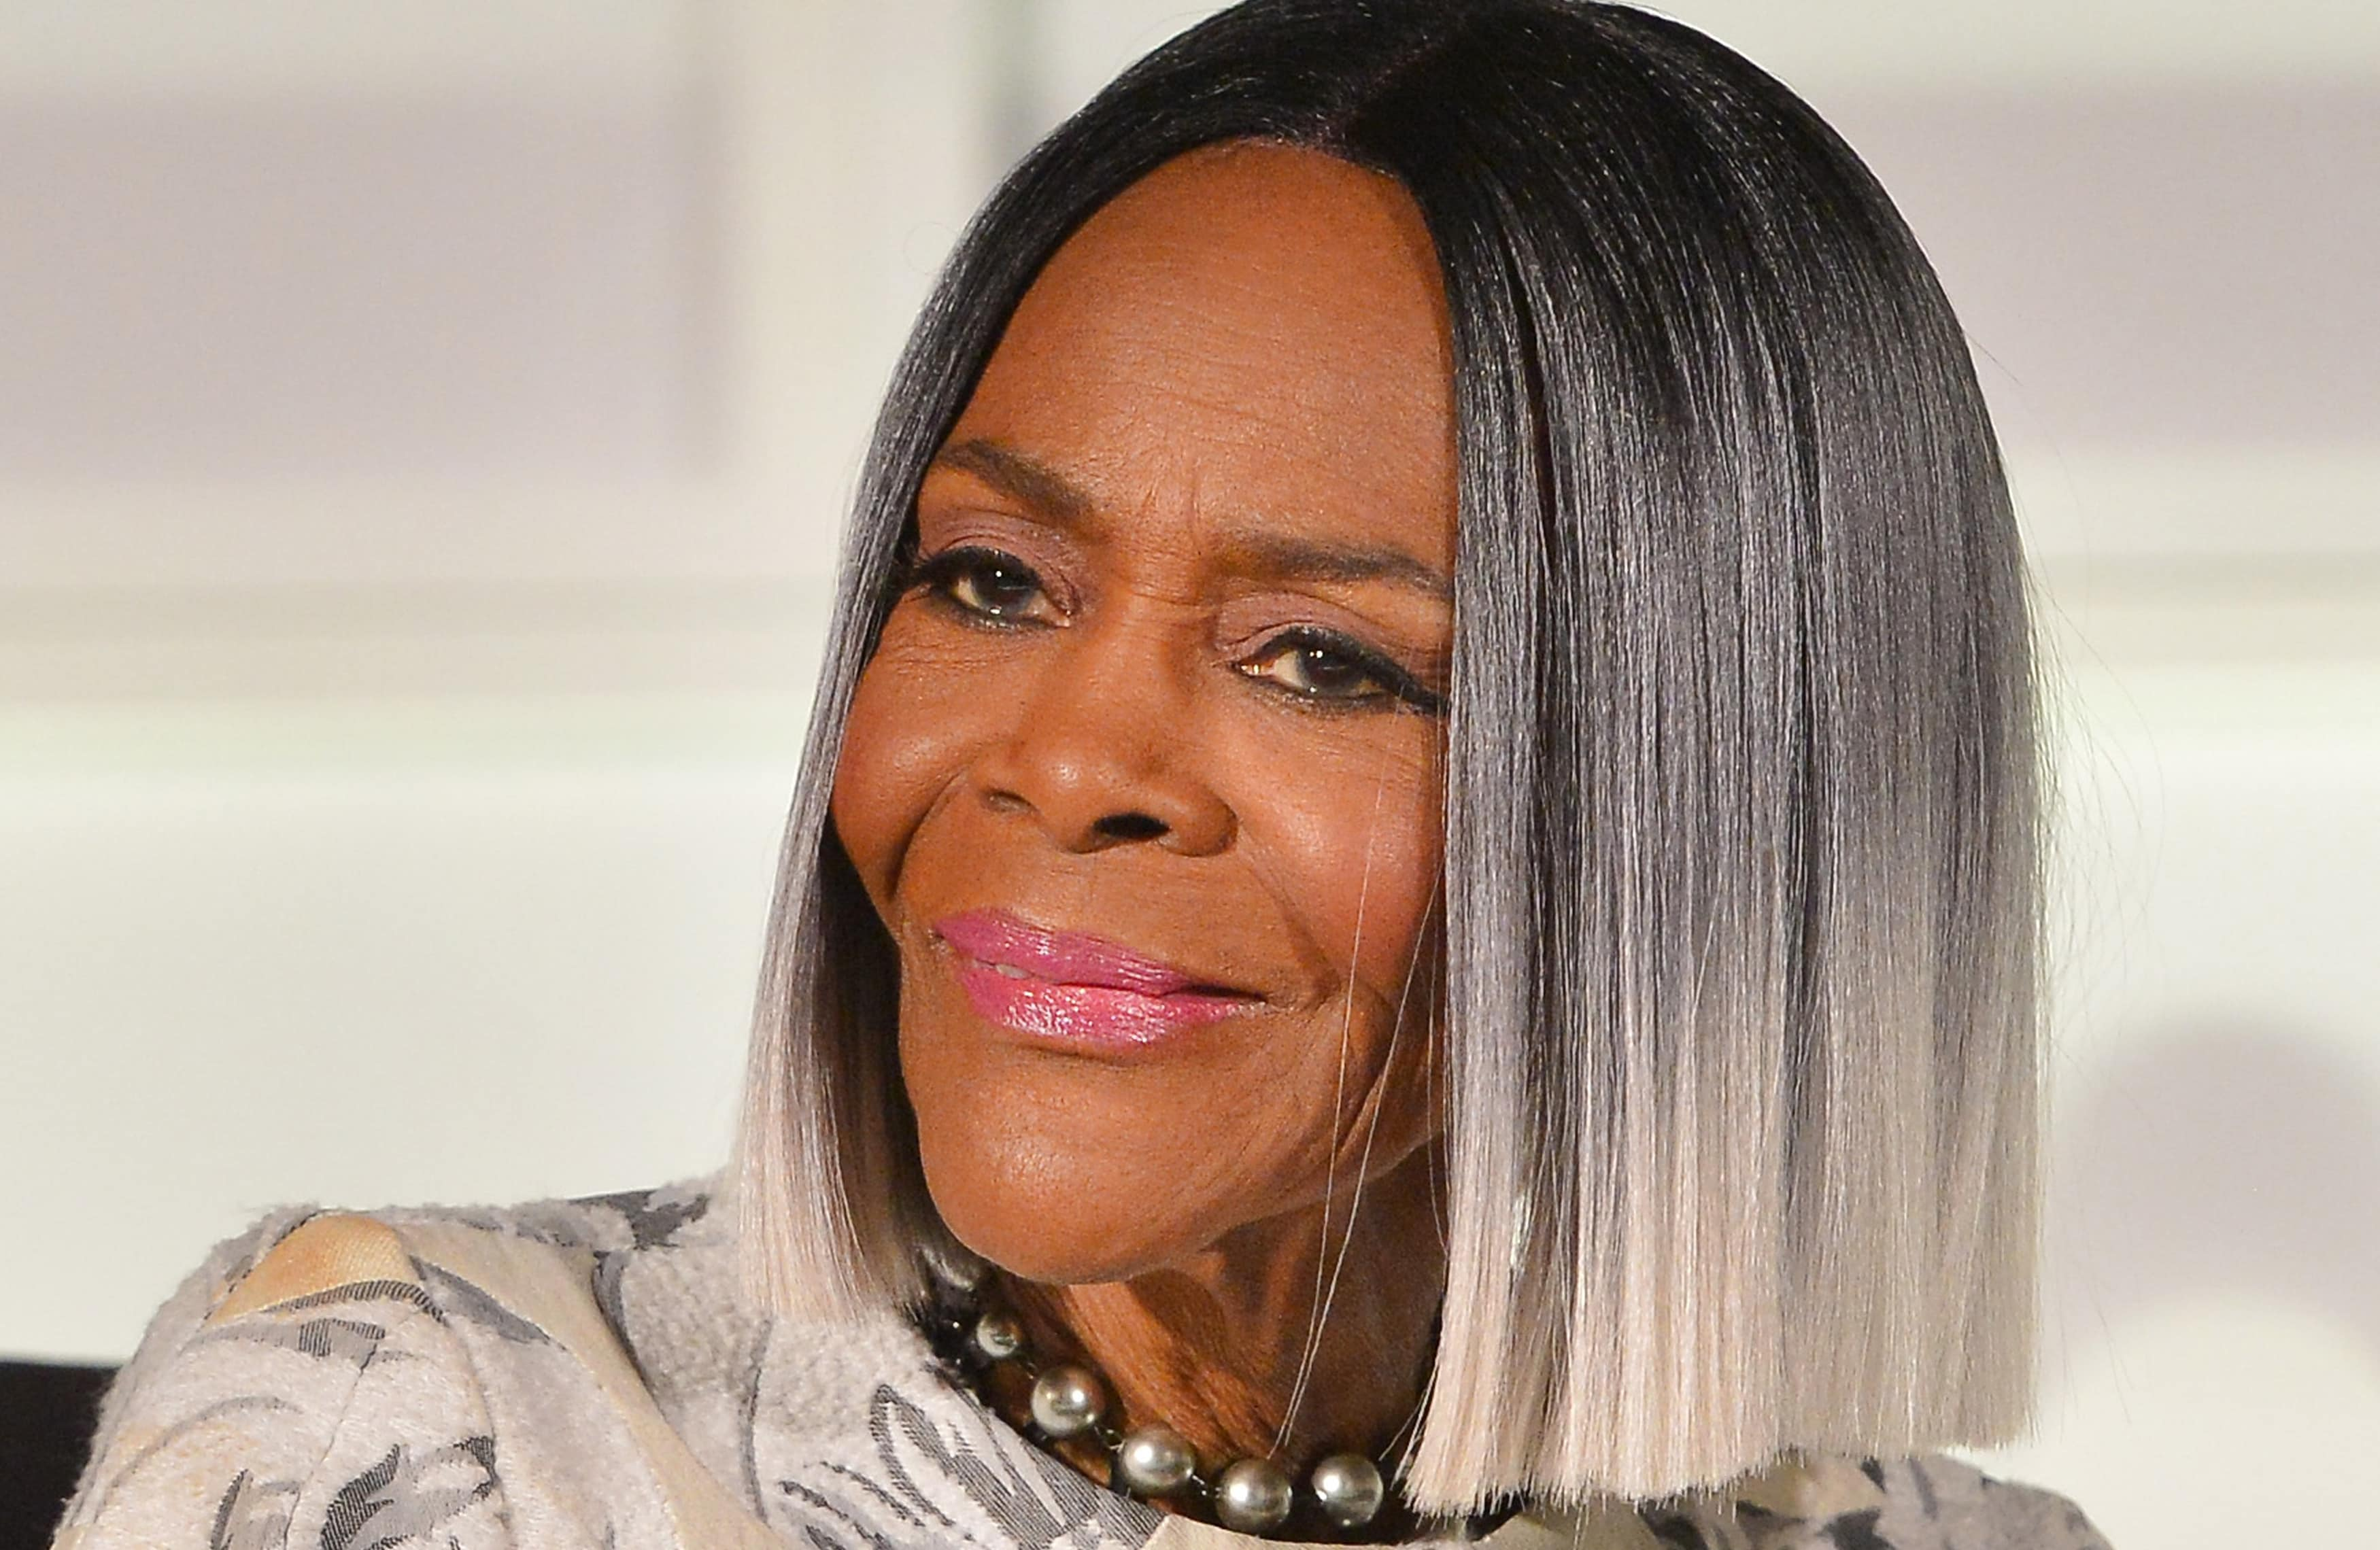 Cicely Tyson Dies, Iconic Emmy-Winning Actress Was 96